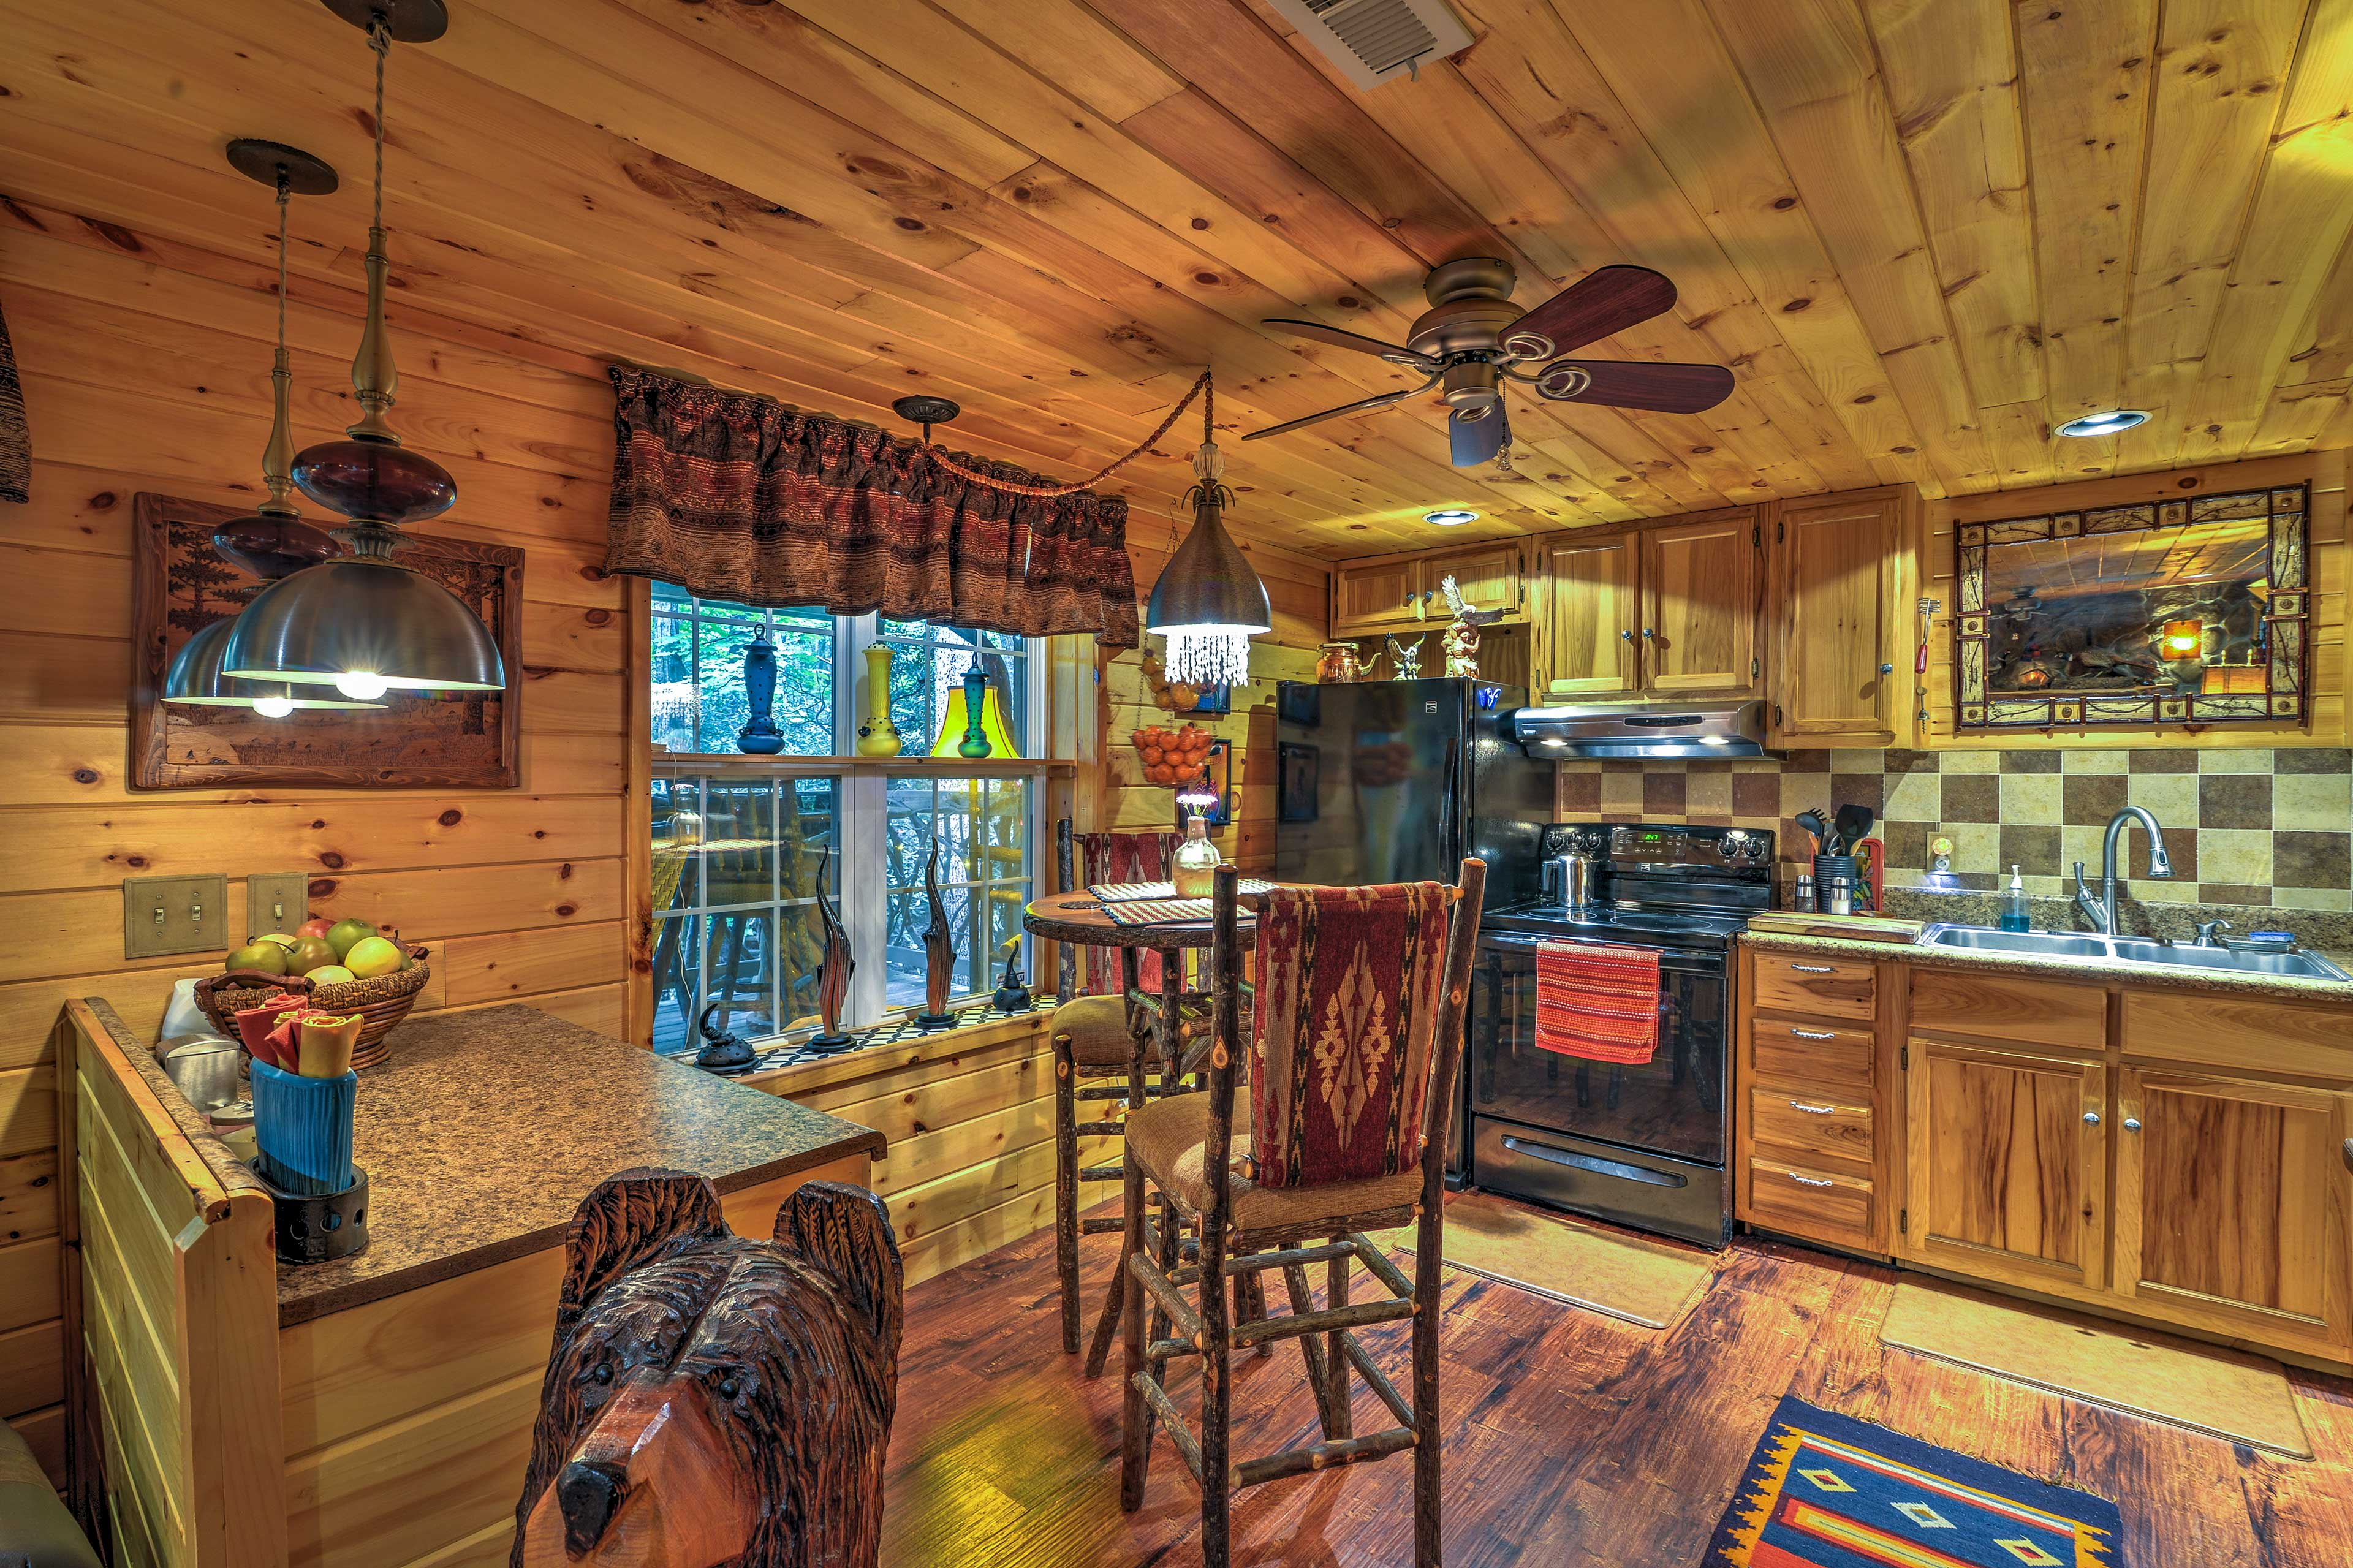 The fully equipped kitchen features updated appliances to make cooking a breeze.